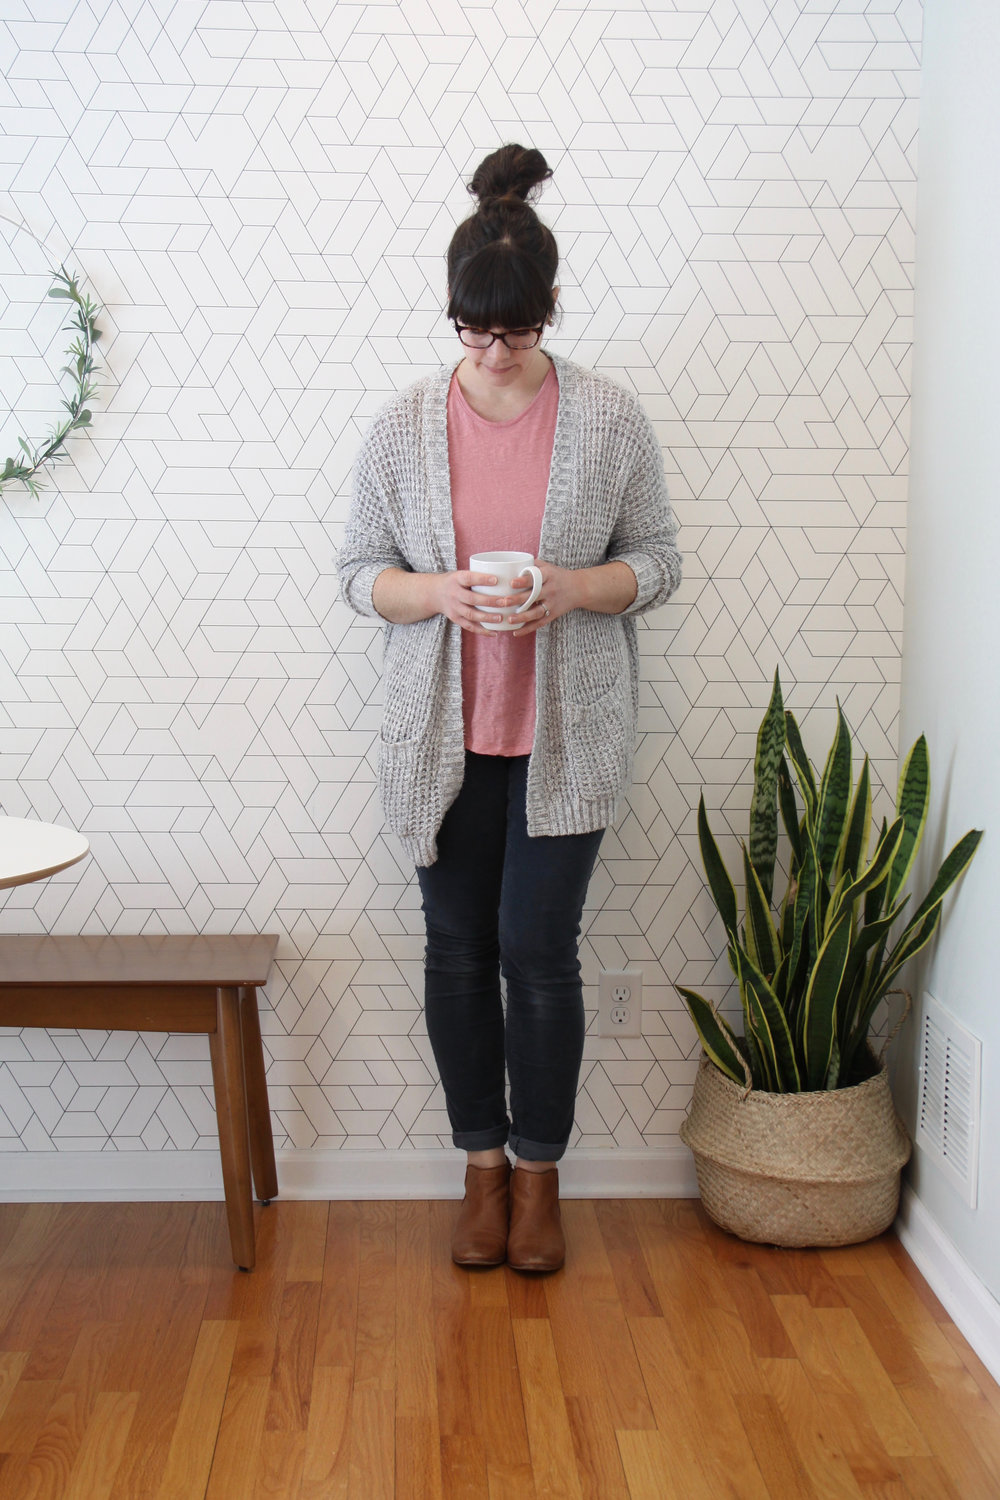 Spring 10x10 Capsule Wardrobe Challenge Pink Linen Tee and Cardigan